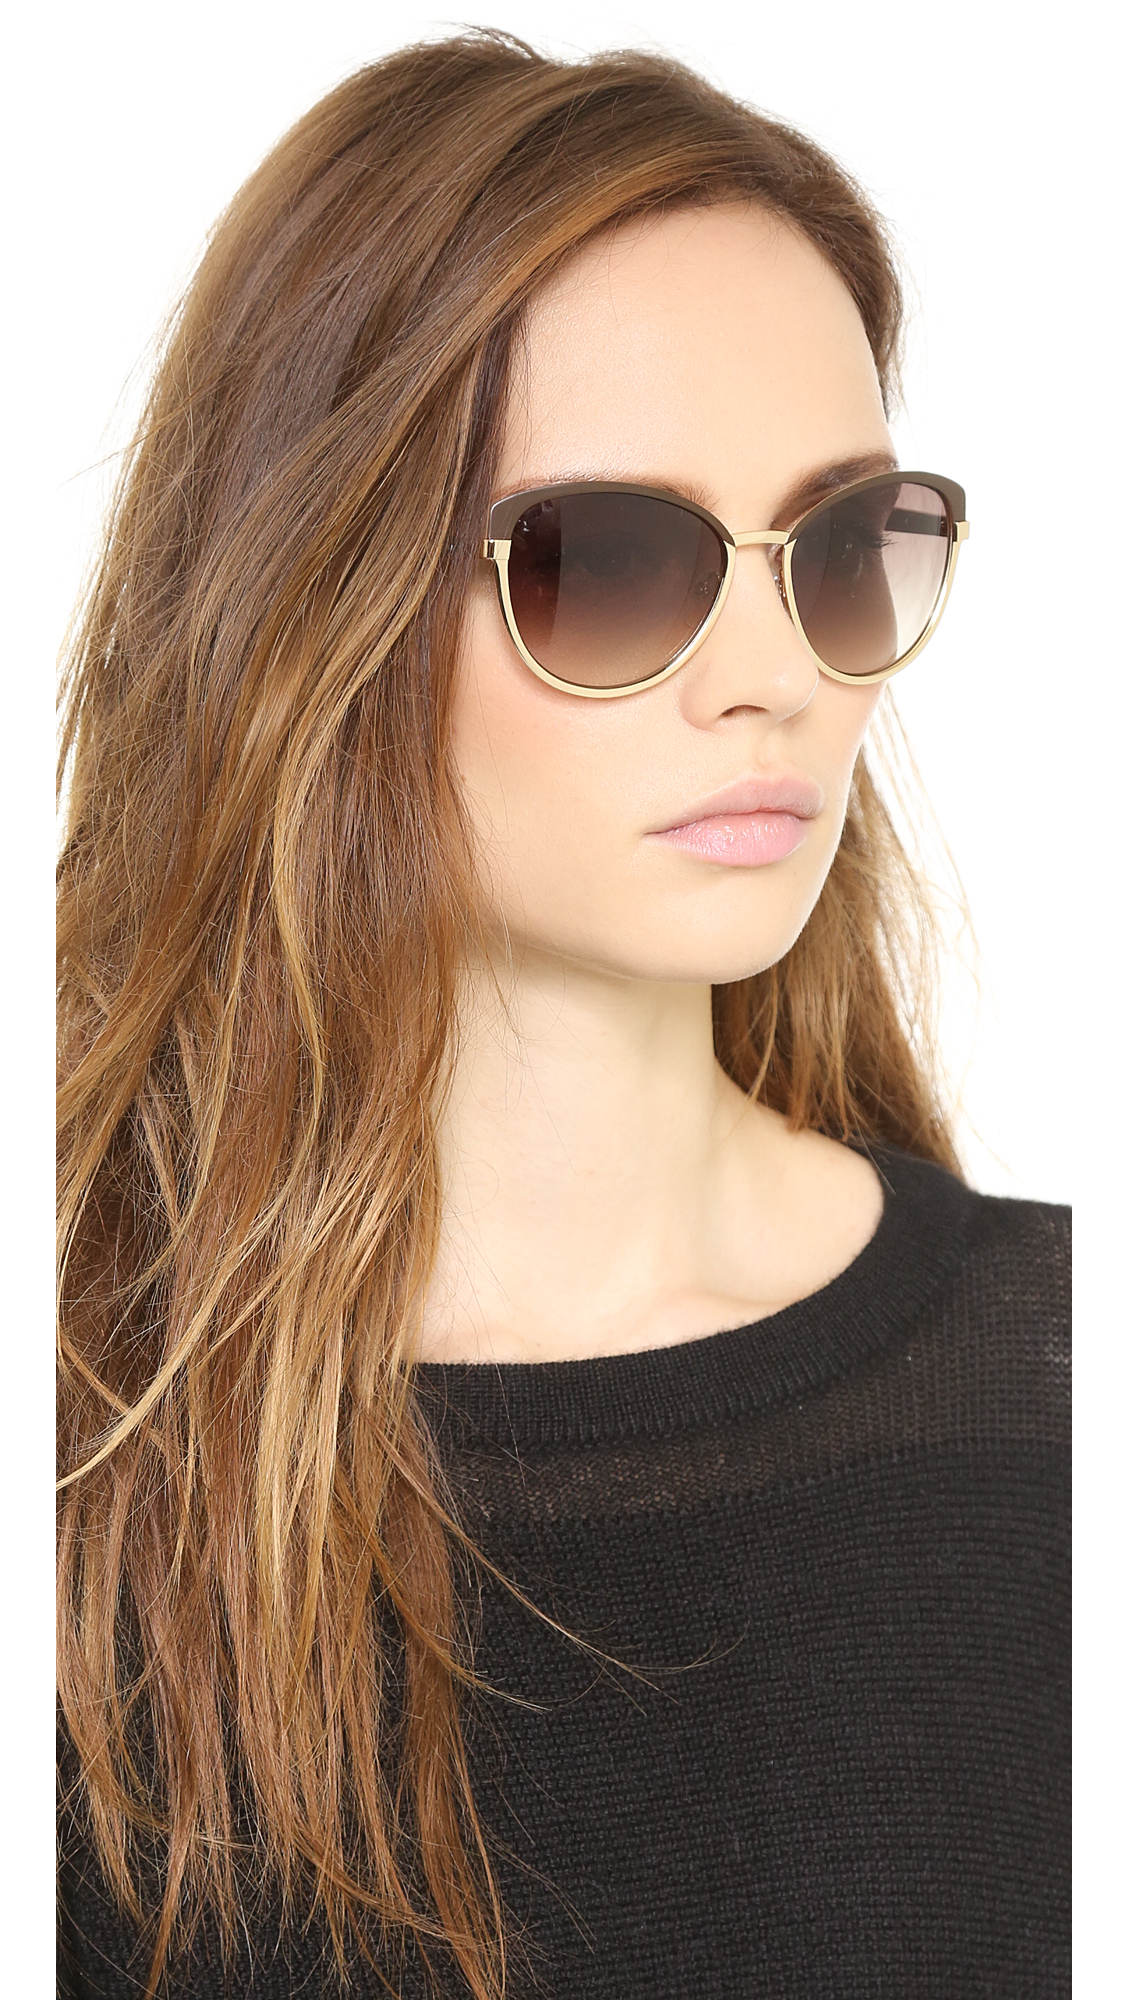 2b75c80f44 Marc by marc jacobs Two Tone Cat Eye Sunglasses - Gold brown Gradient in  Brown